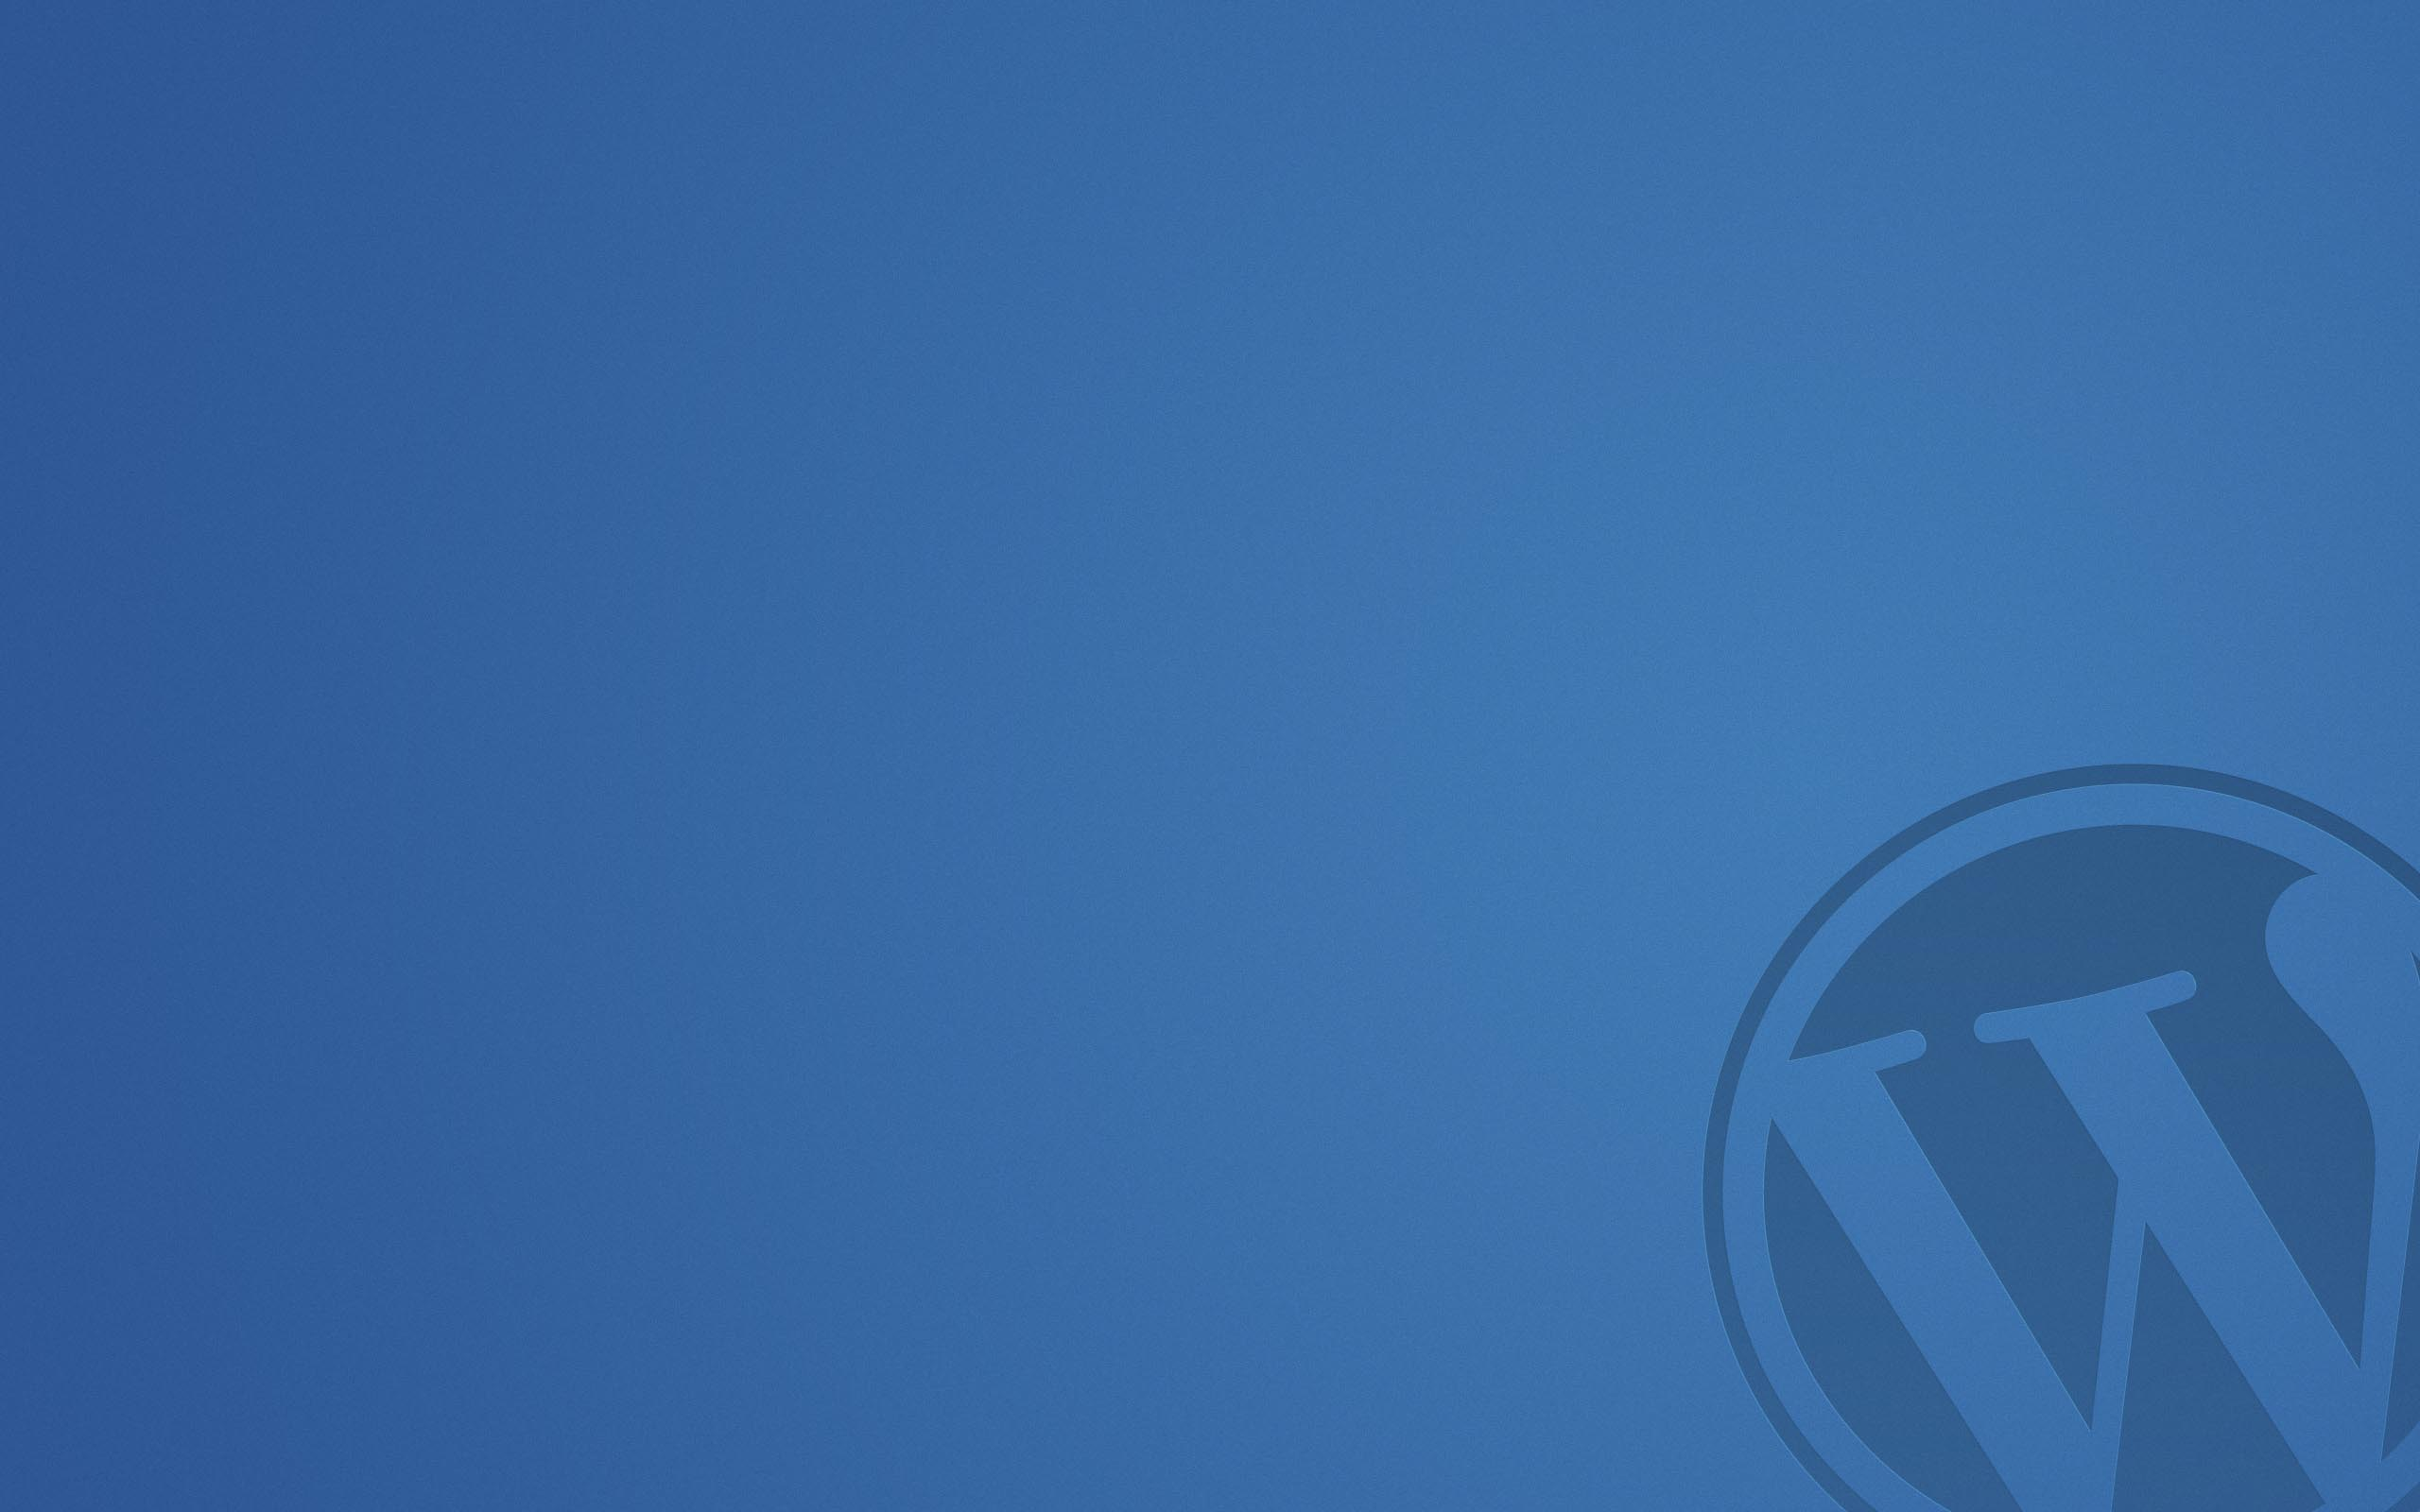 wordpress logo wallpaper background 62784